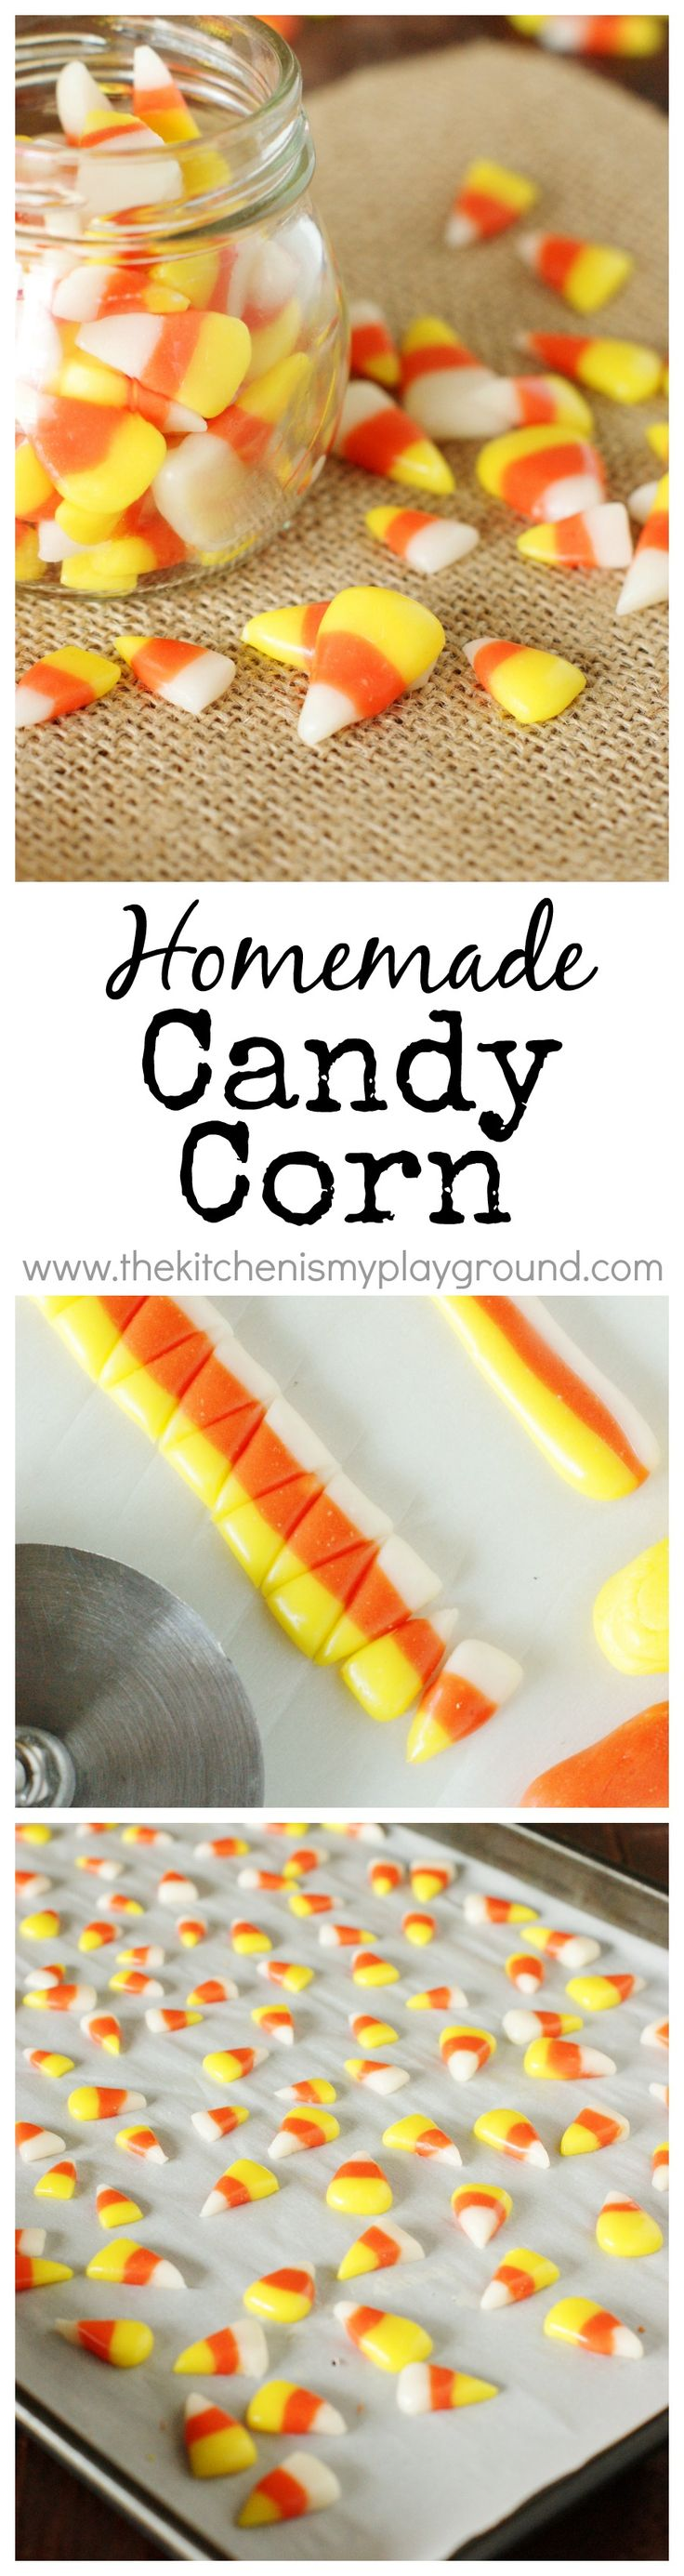 Homemade Candy Corn ~ make your very own homemade version of this iconic Halloween treat. www.thekitchenismyplayground.com: